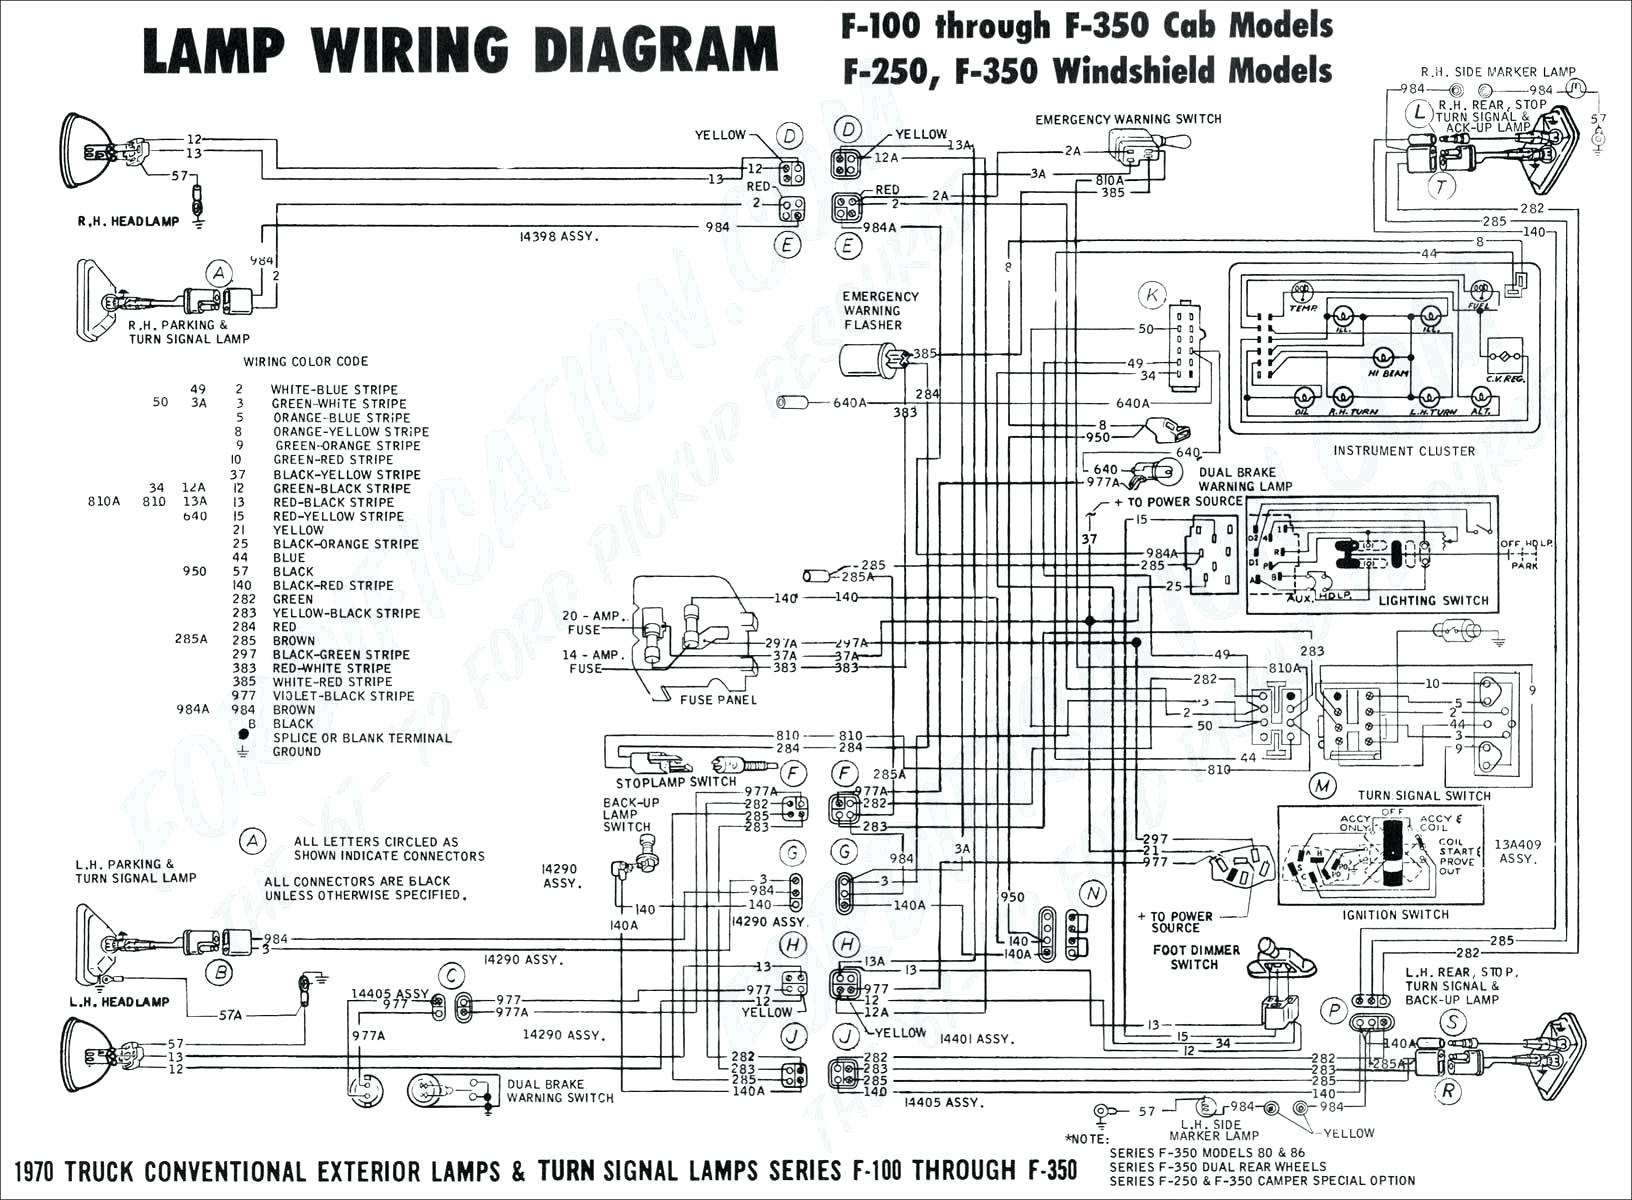 1999 Mazda Miata Engine Diagram Mazda Miata Engine Partment Additionally International Wiring Of 1999 Mazda Miata Engine Diagram